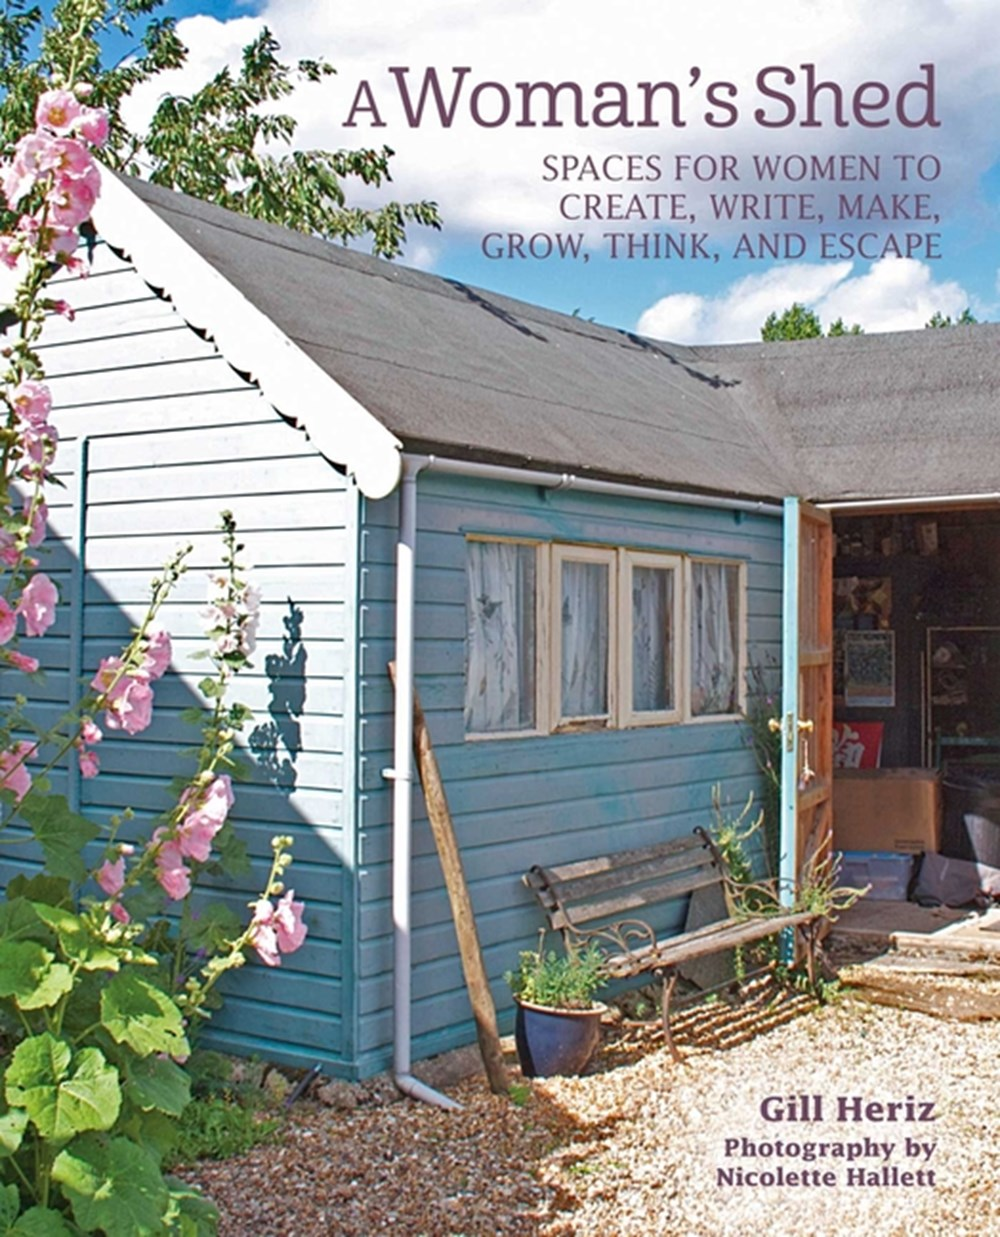 Woman's Shed Spaces for Women to Create, Write, Make, Grow, Think, and Escape